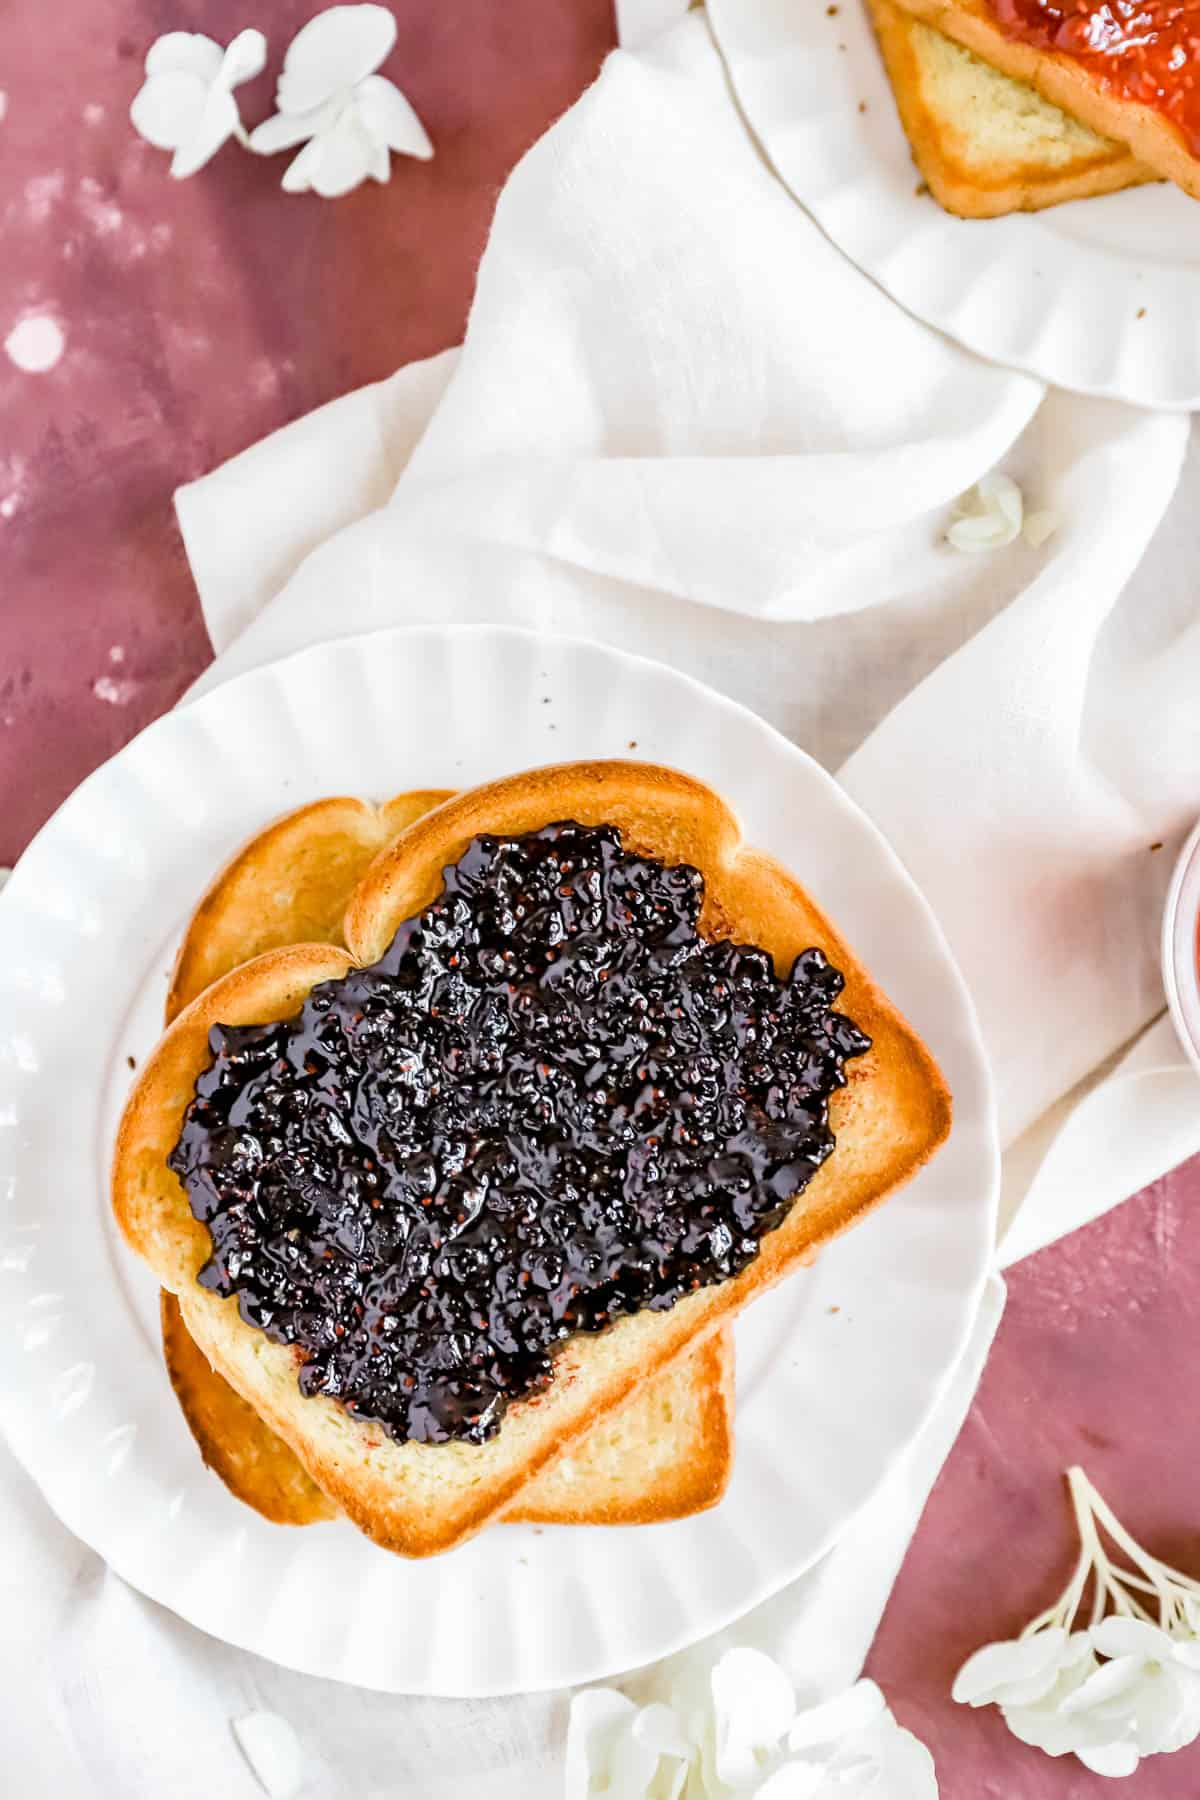 a slice of toast with homemade black raspberry jam on it and another piece of toast below.